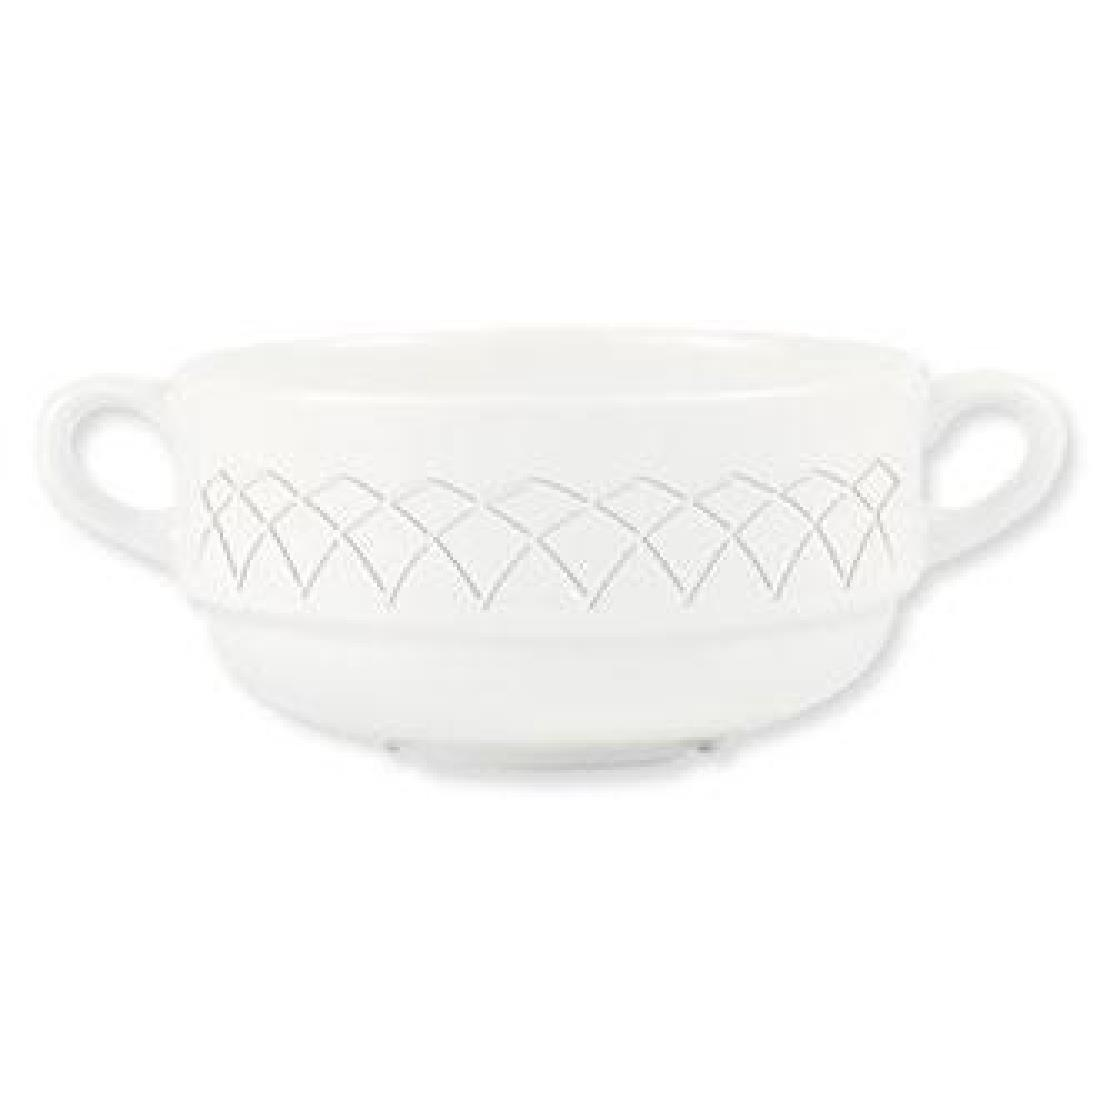 Y644 - Alchemy Jardin Consomme Bowl Handled